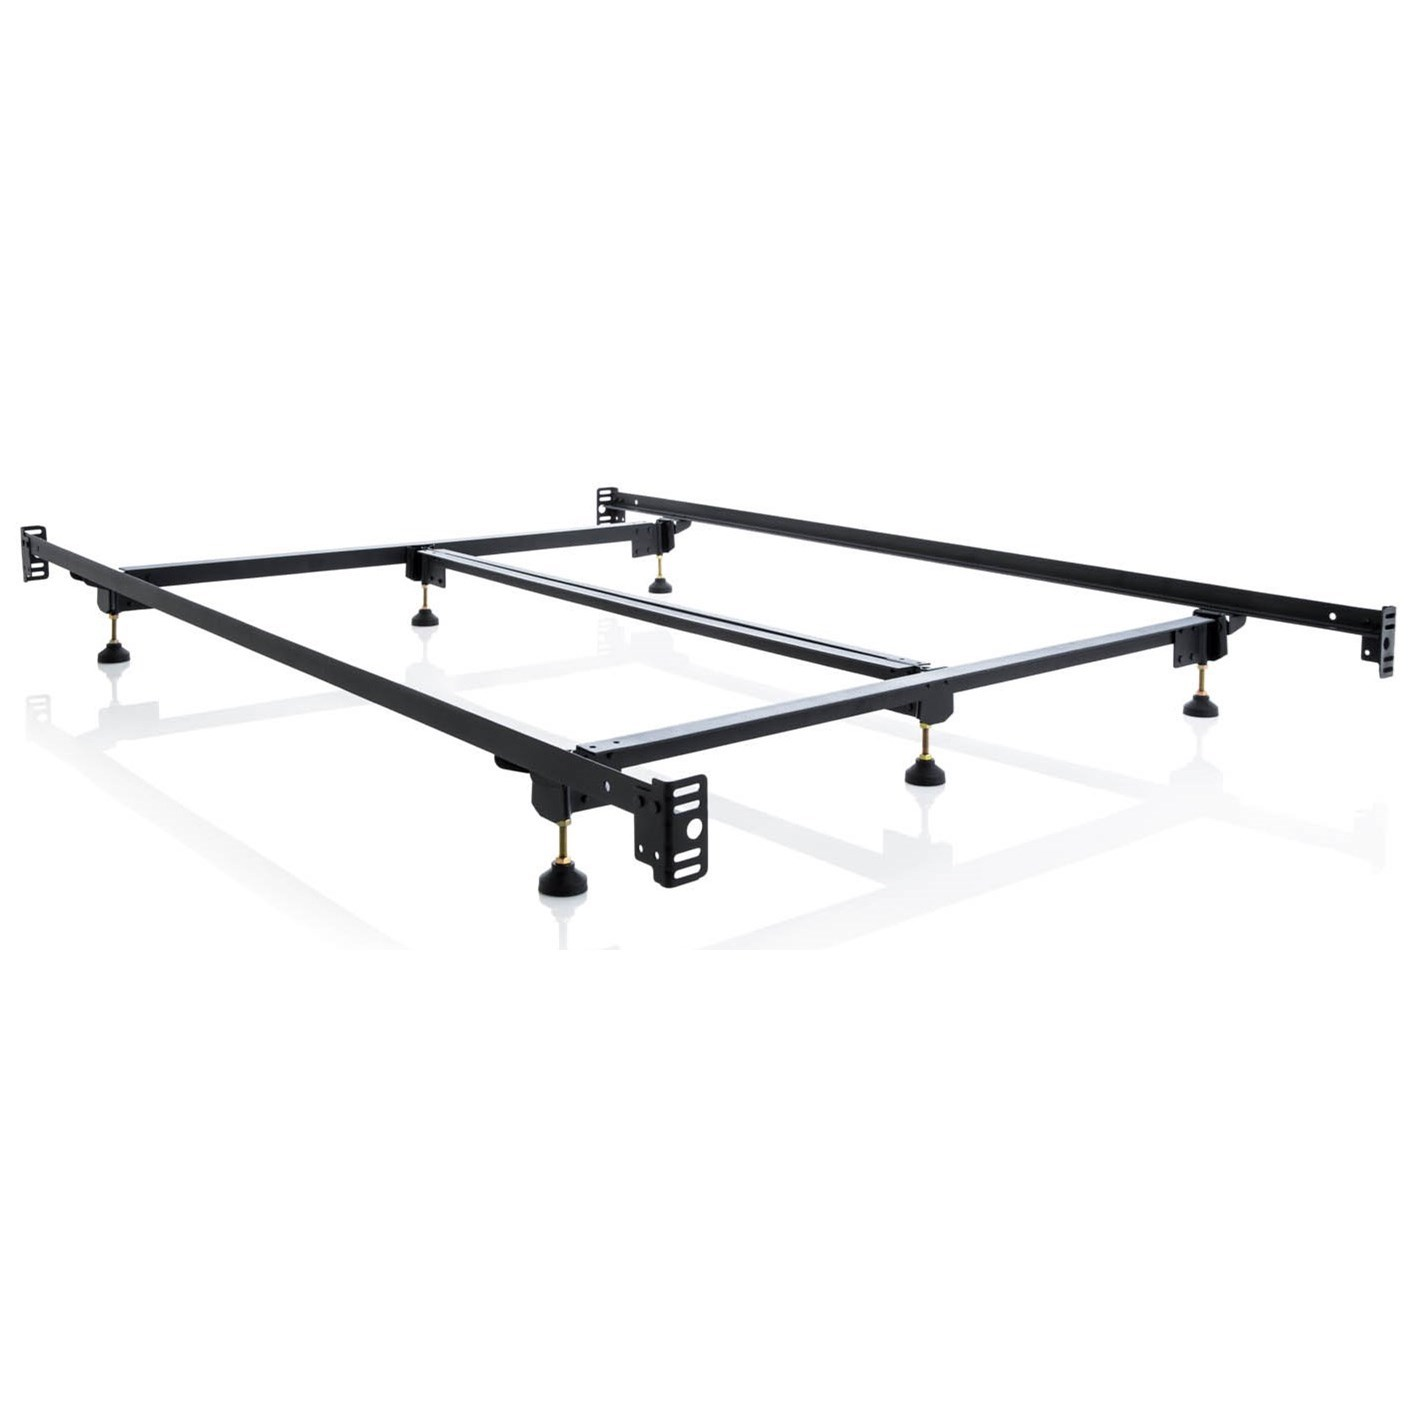 Malouf Steelock Full Steelock Adaptable Hook-In Bed Frame - Item Number: STBHFFSL